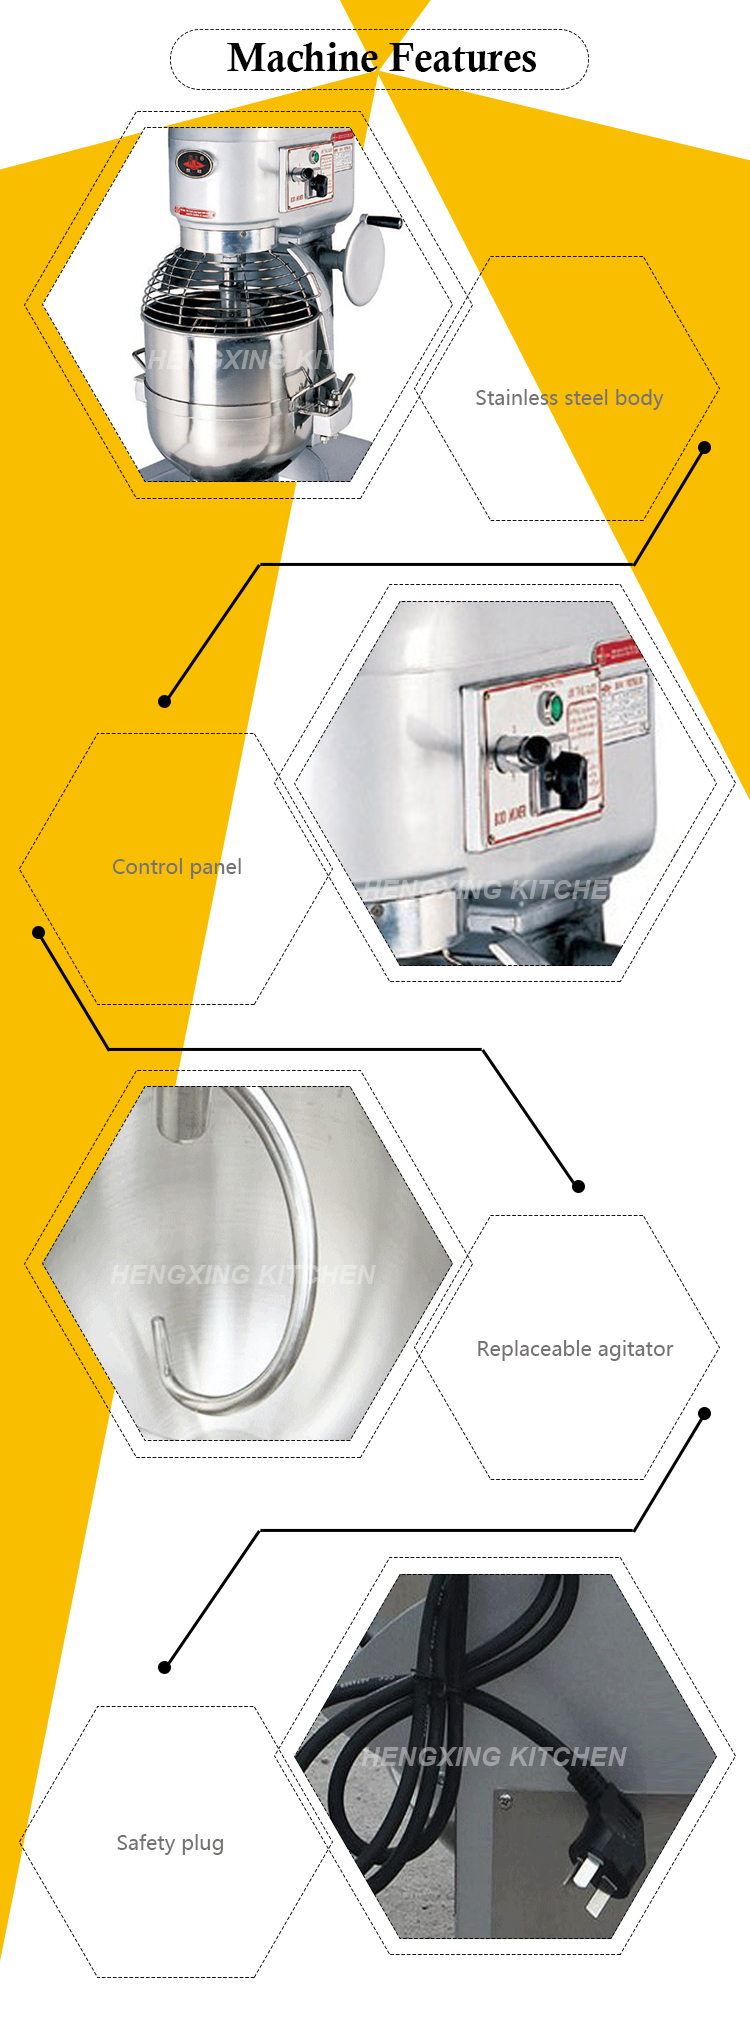 Commercial Heavy Duty Food Preparation Bakery Planetary Dough Mixer Wiring Diagram